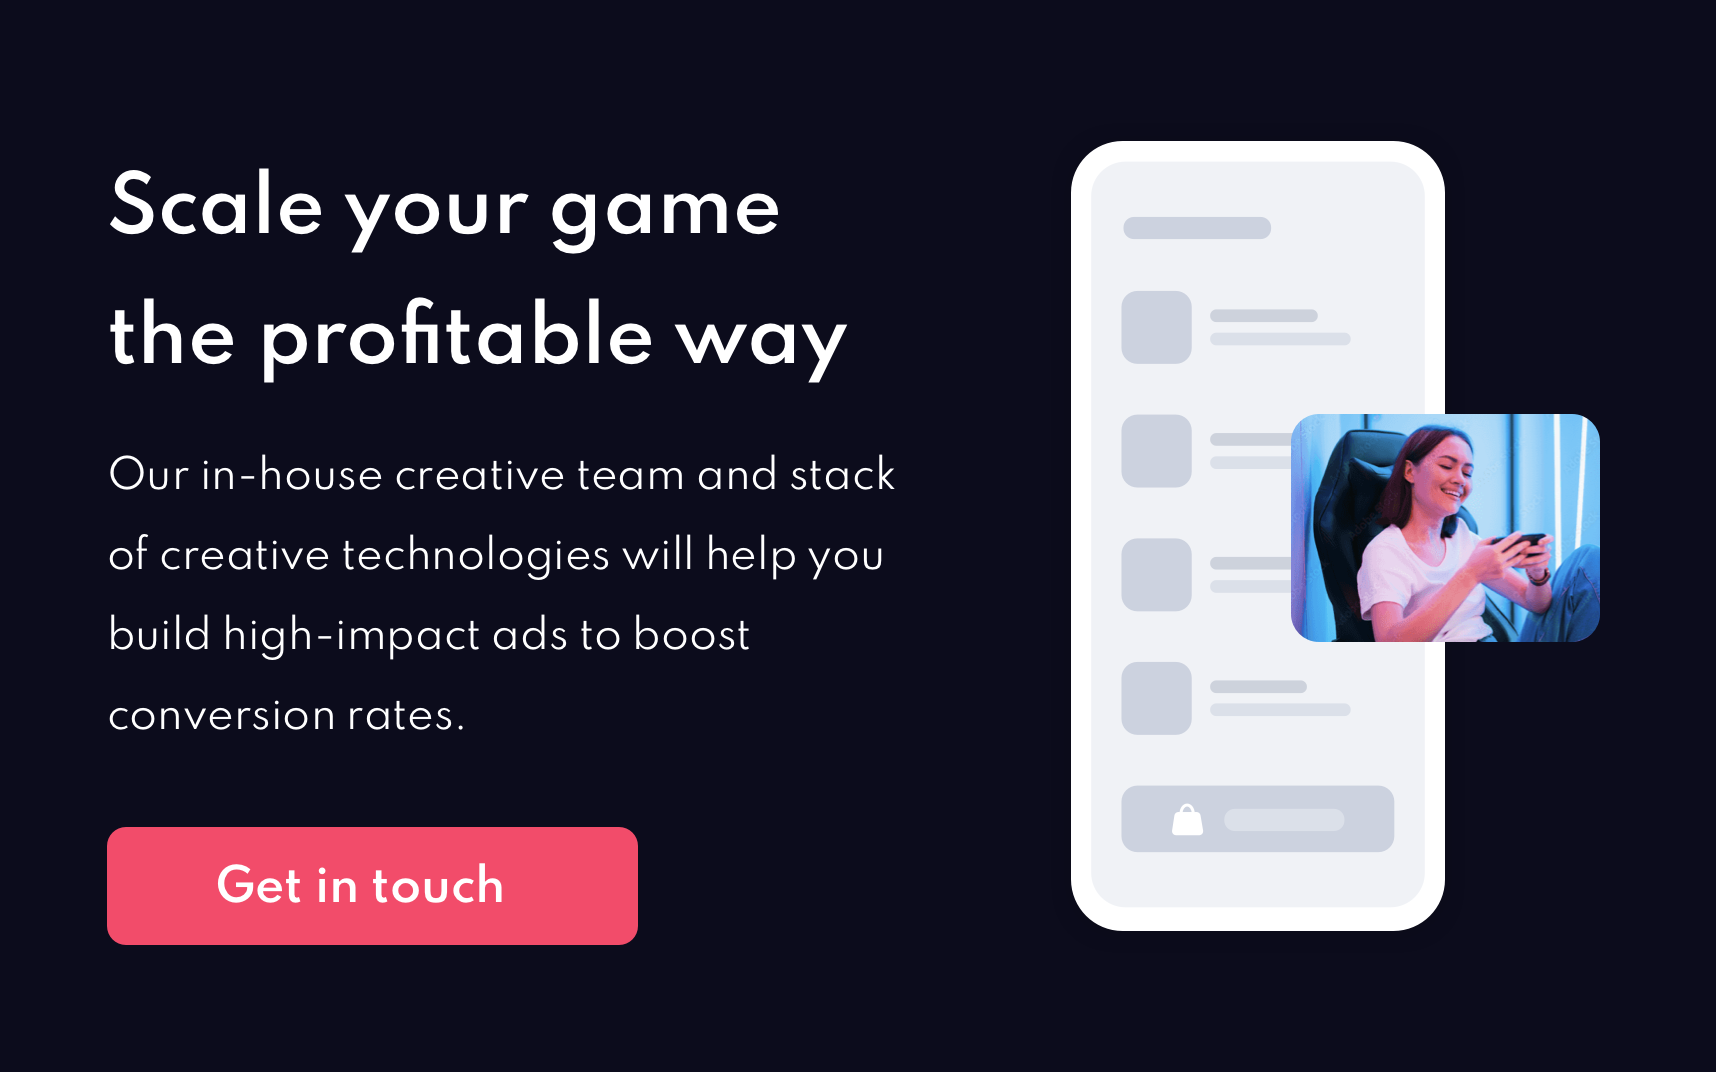 Scale your game the profitable way